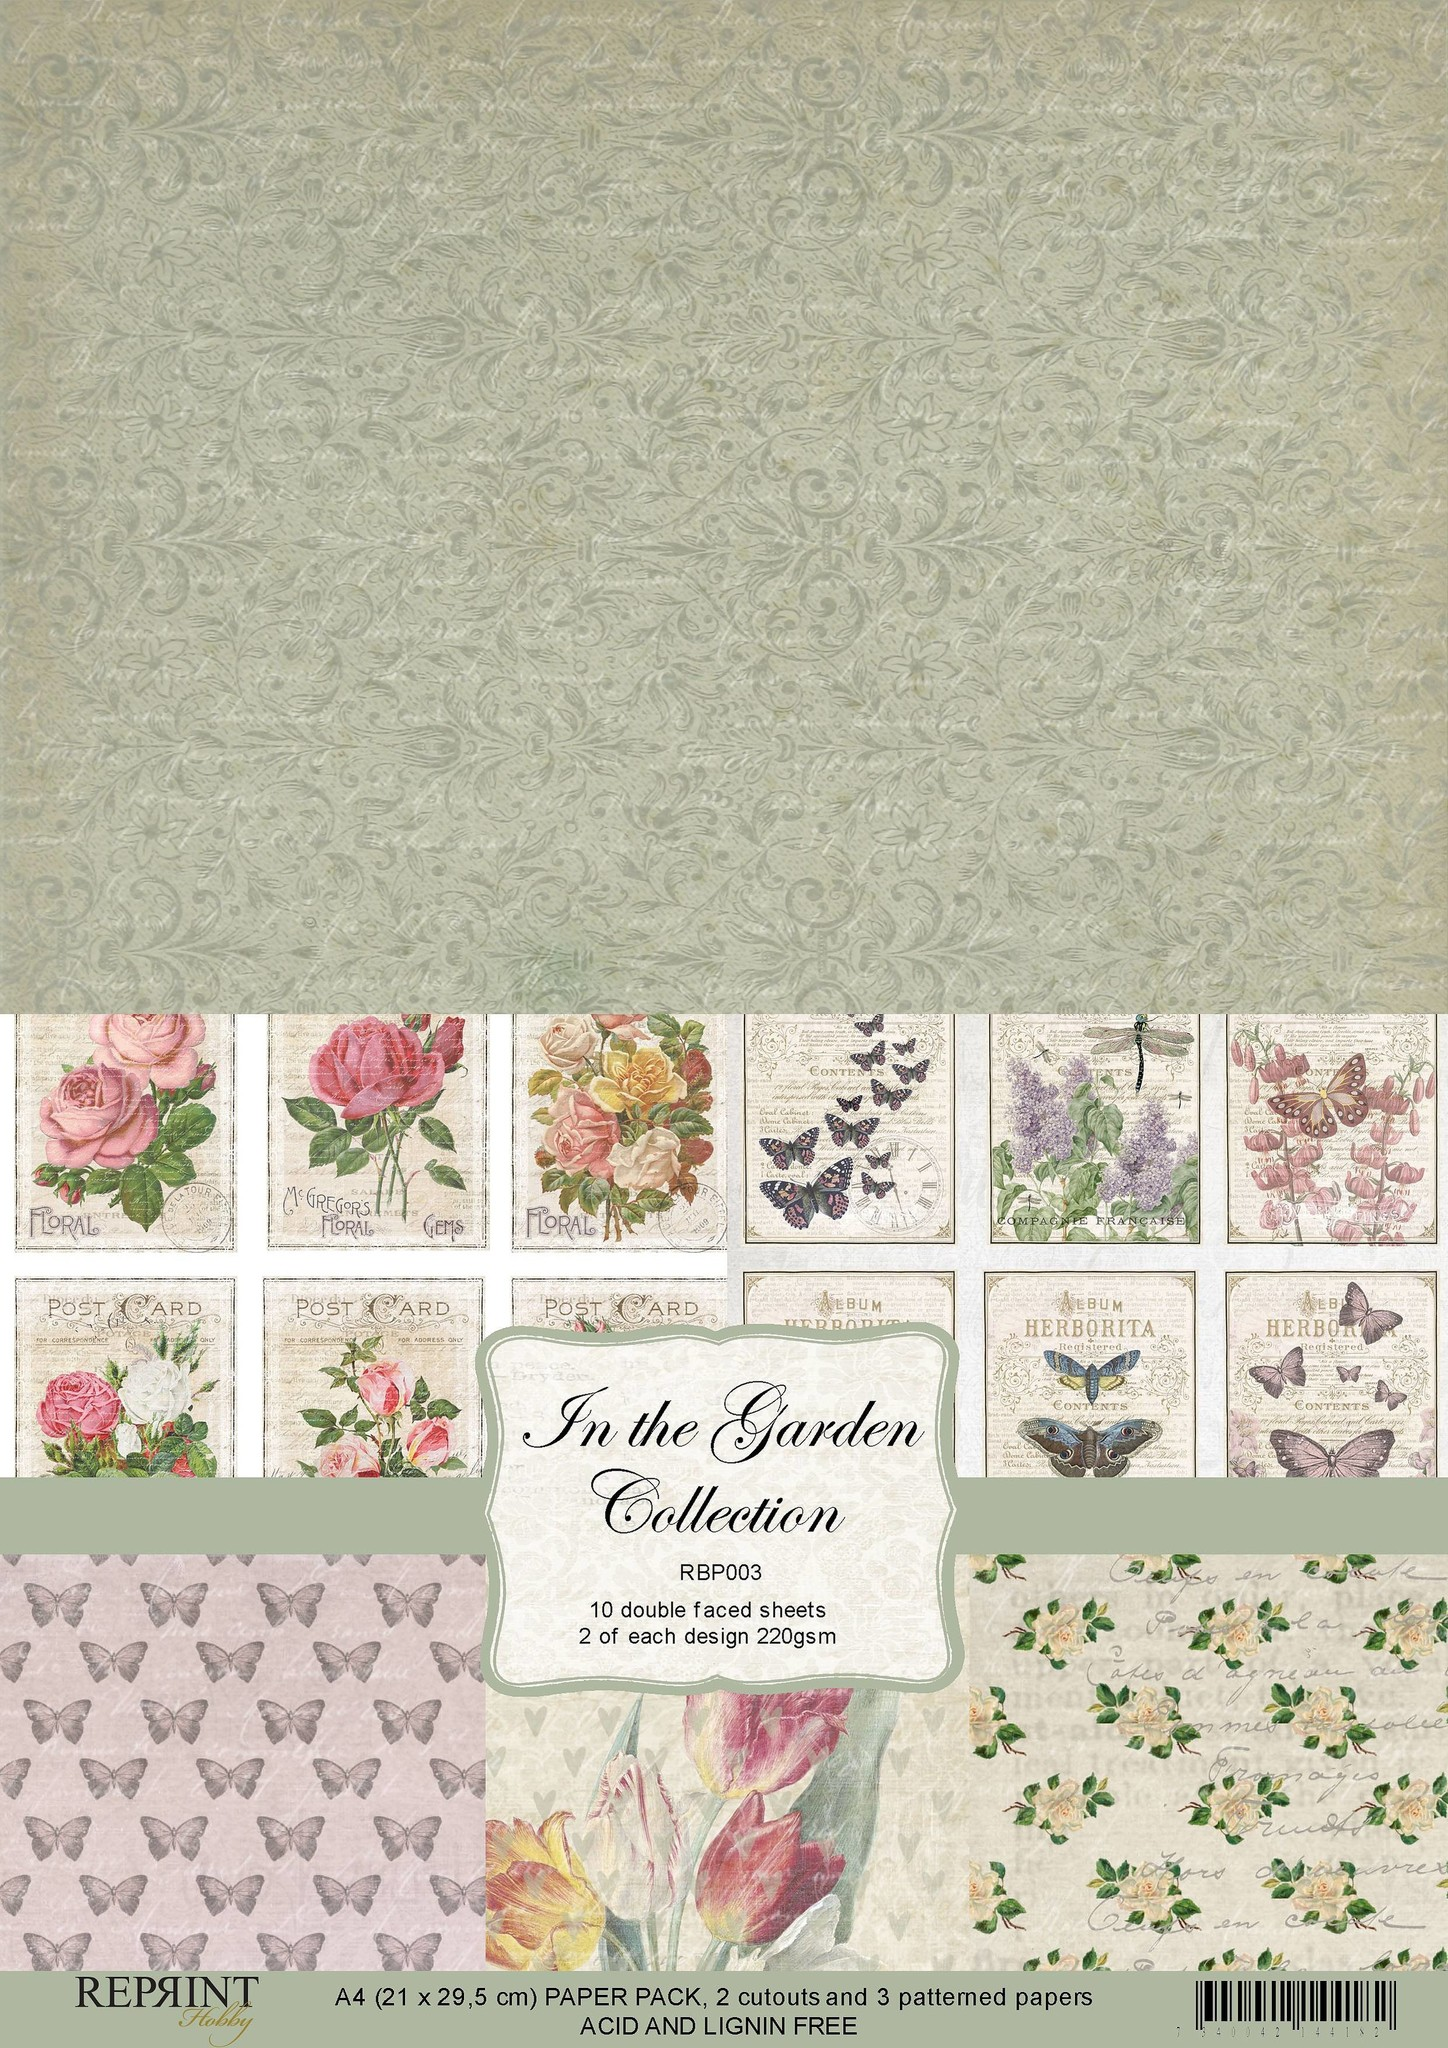 Reprint In the Garden Collection A4 Paper Pack (RBP003)